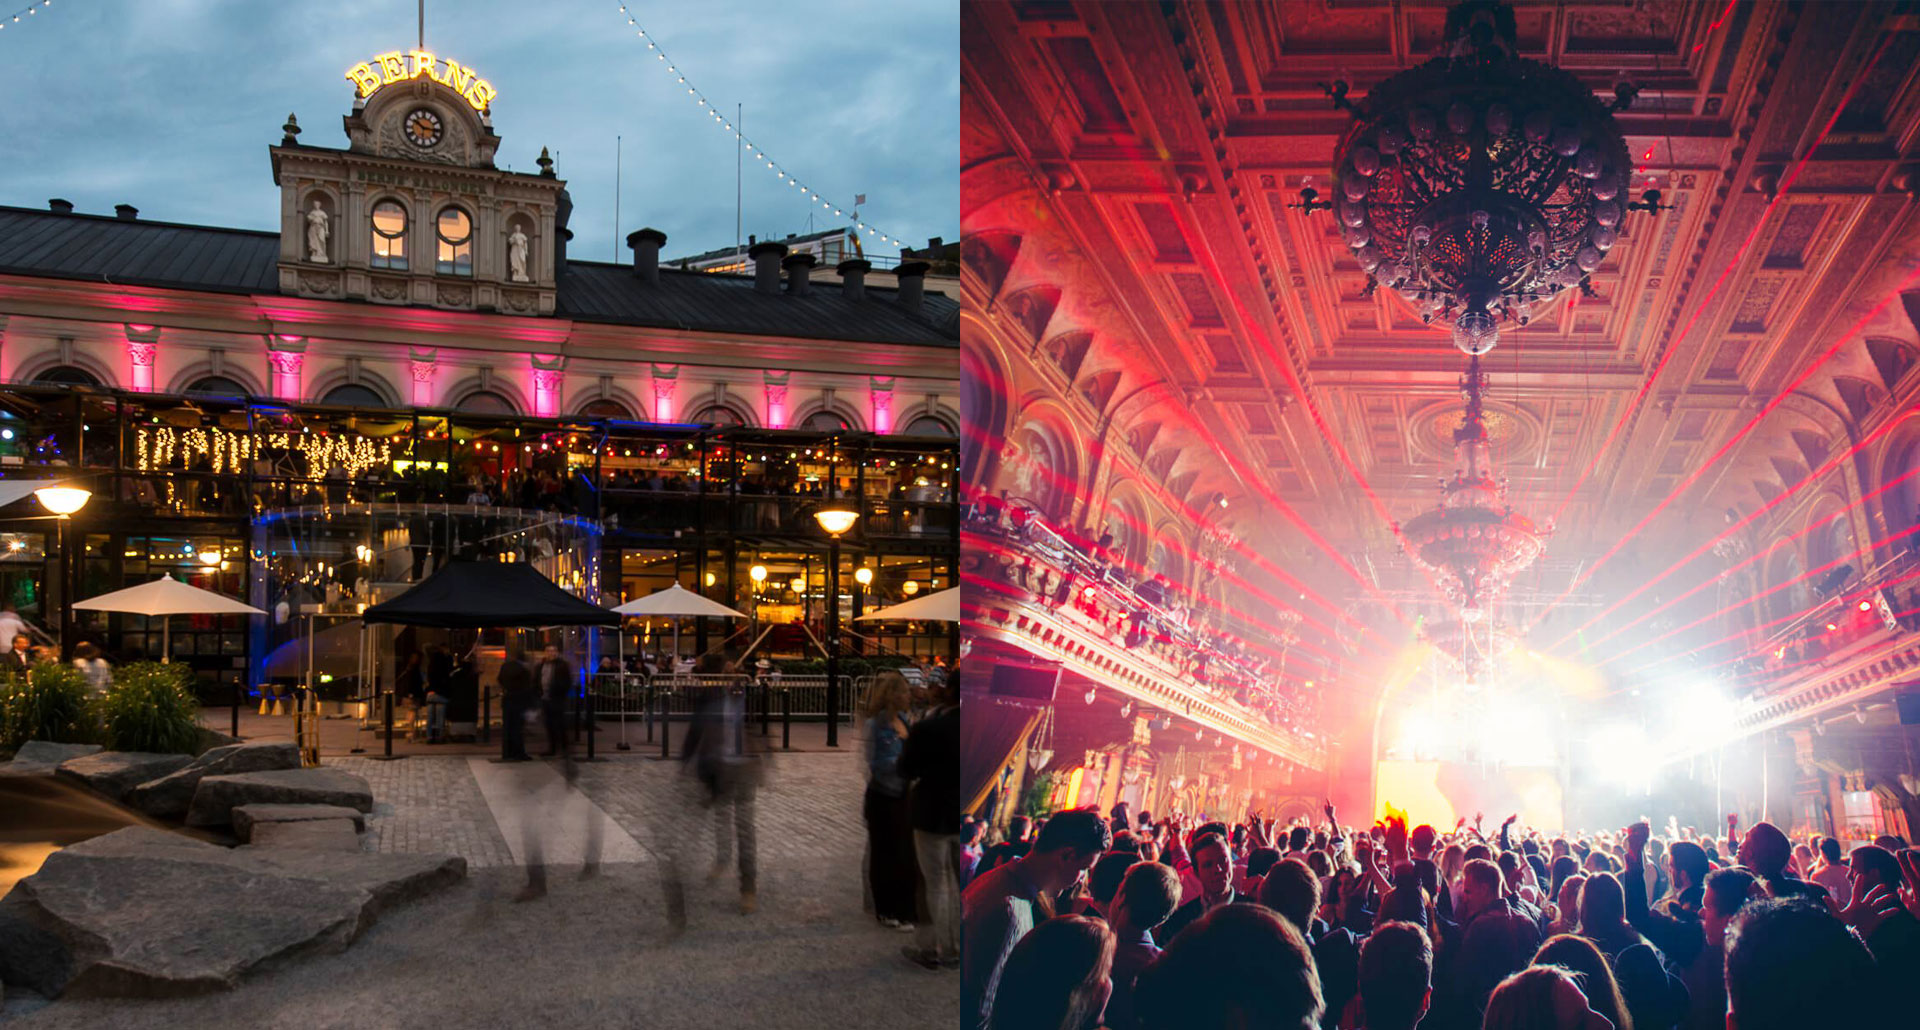 Berns Hotel, Stockholm - best nightlife boutique hotel in Stockholm, Sweden